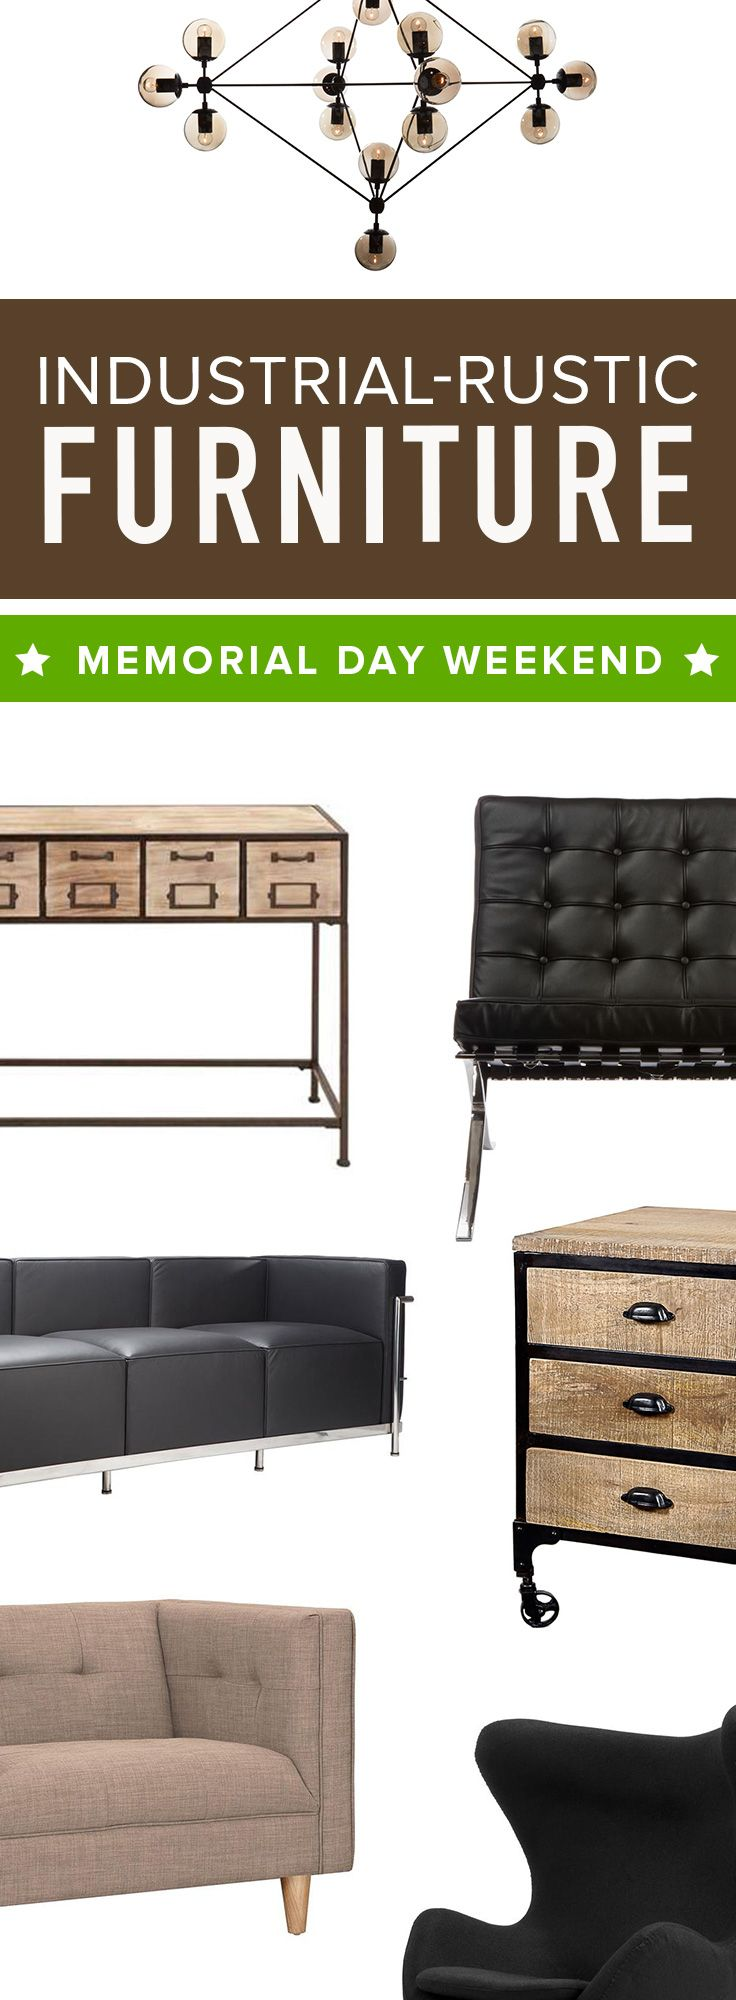 Memorial Day Weekend Clearance Sale! Shop Modern Industrial Furniture & Décor Before It's All Gone at dotandbo.com | Sale Runs 5/22/15-5/25/15